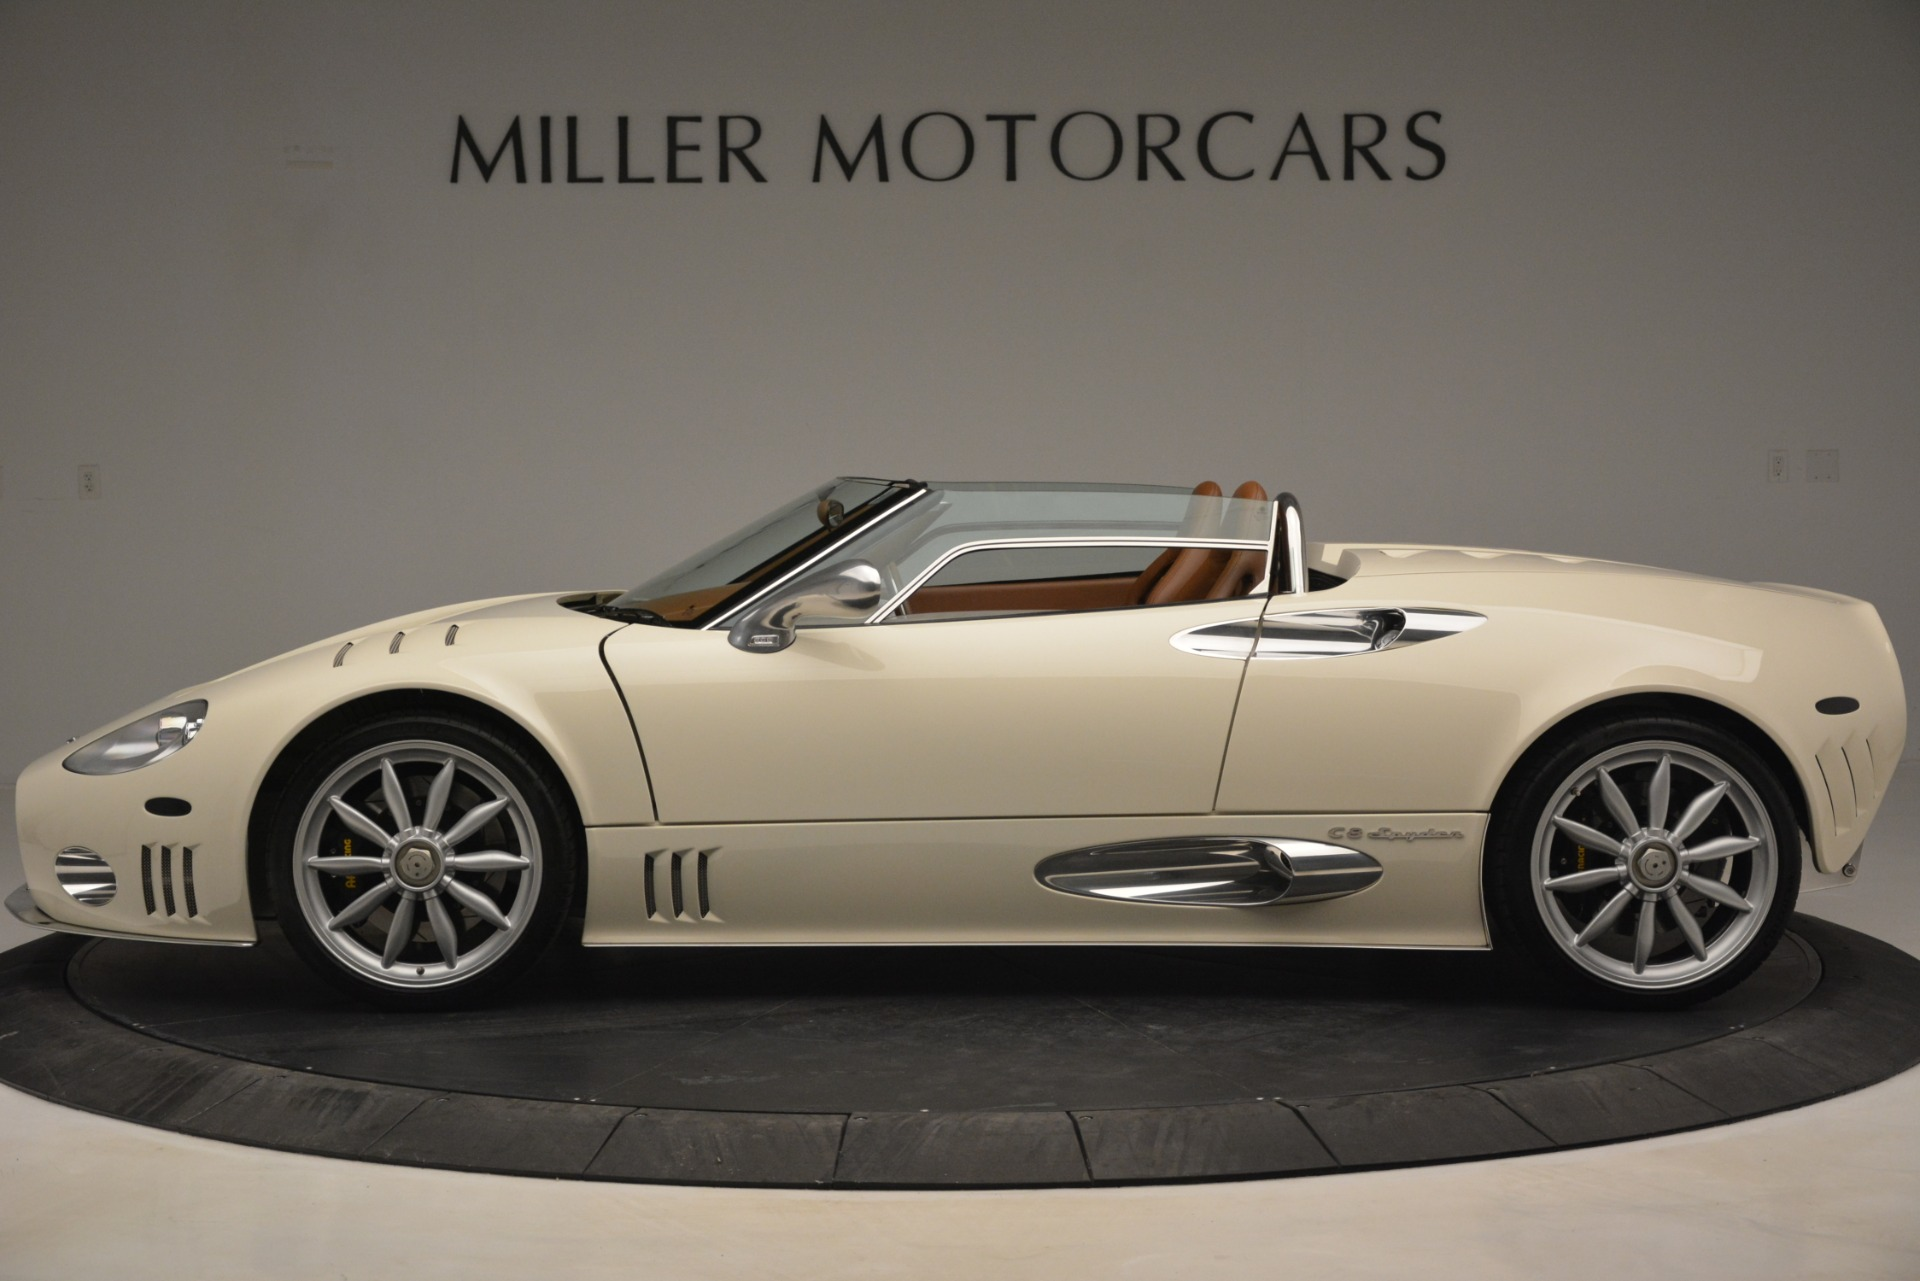 Used 2006 Spyker C8 Spyder  For Sale In Westport, CT 1661_p3